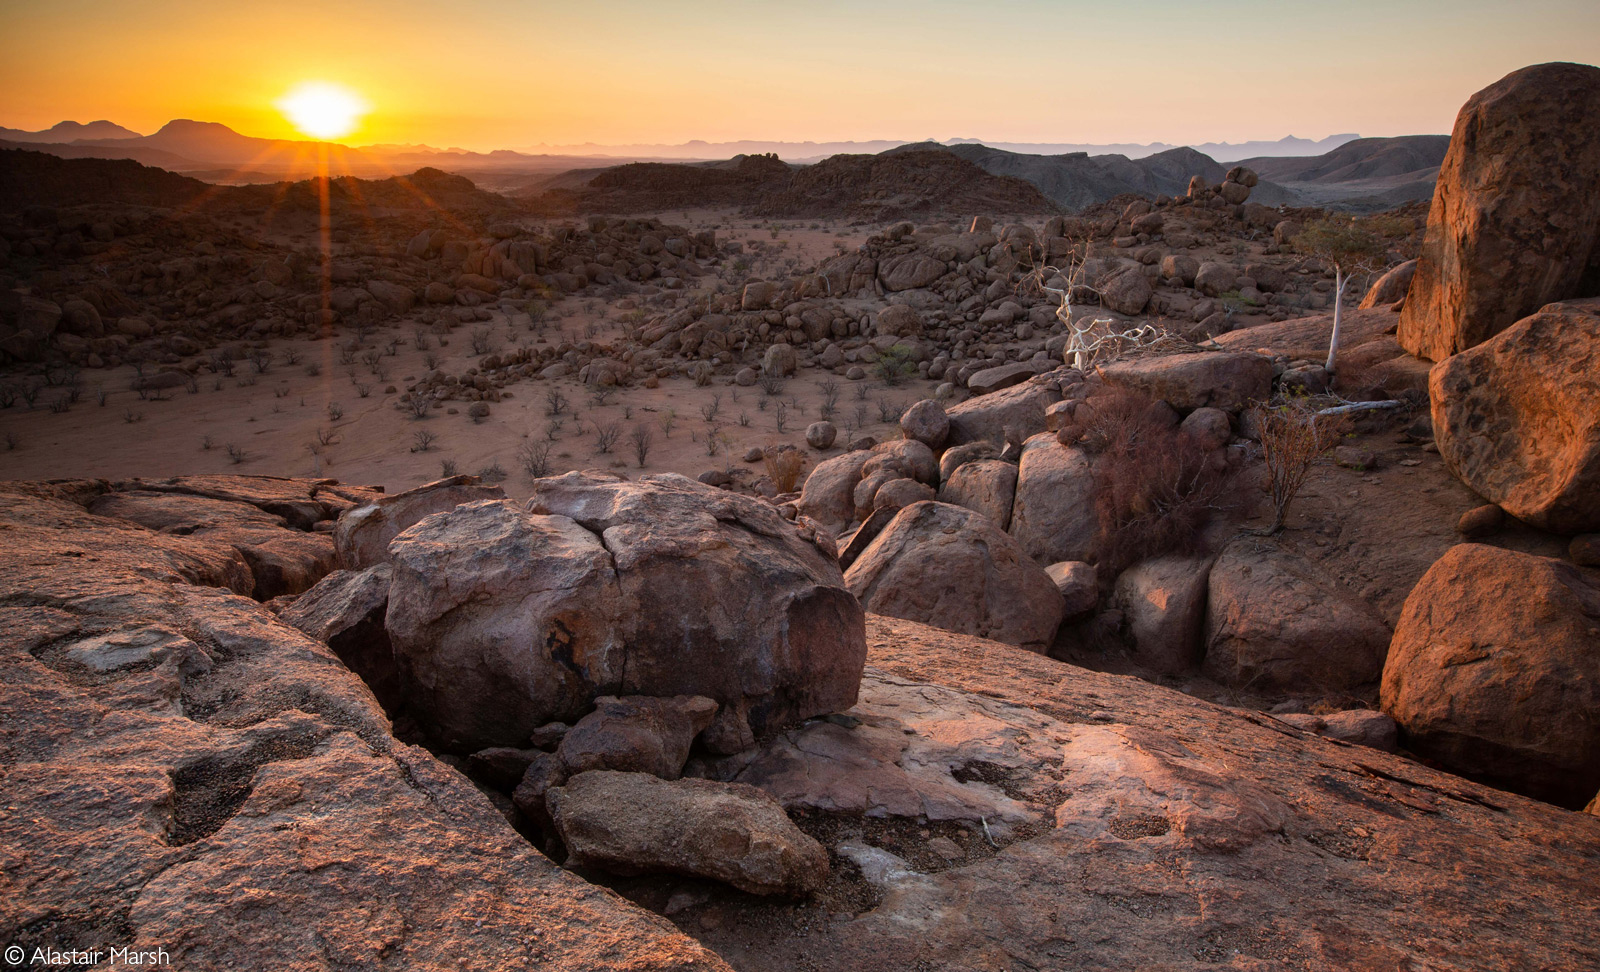 Sunset across the Namib Desert from Mowani Mountain Camp. Damaraland, Namibia © Alastair Marsh